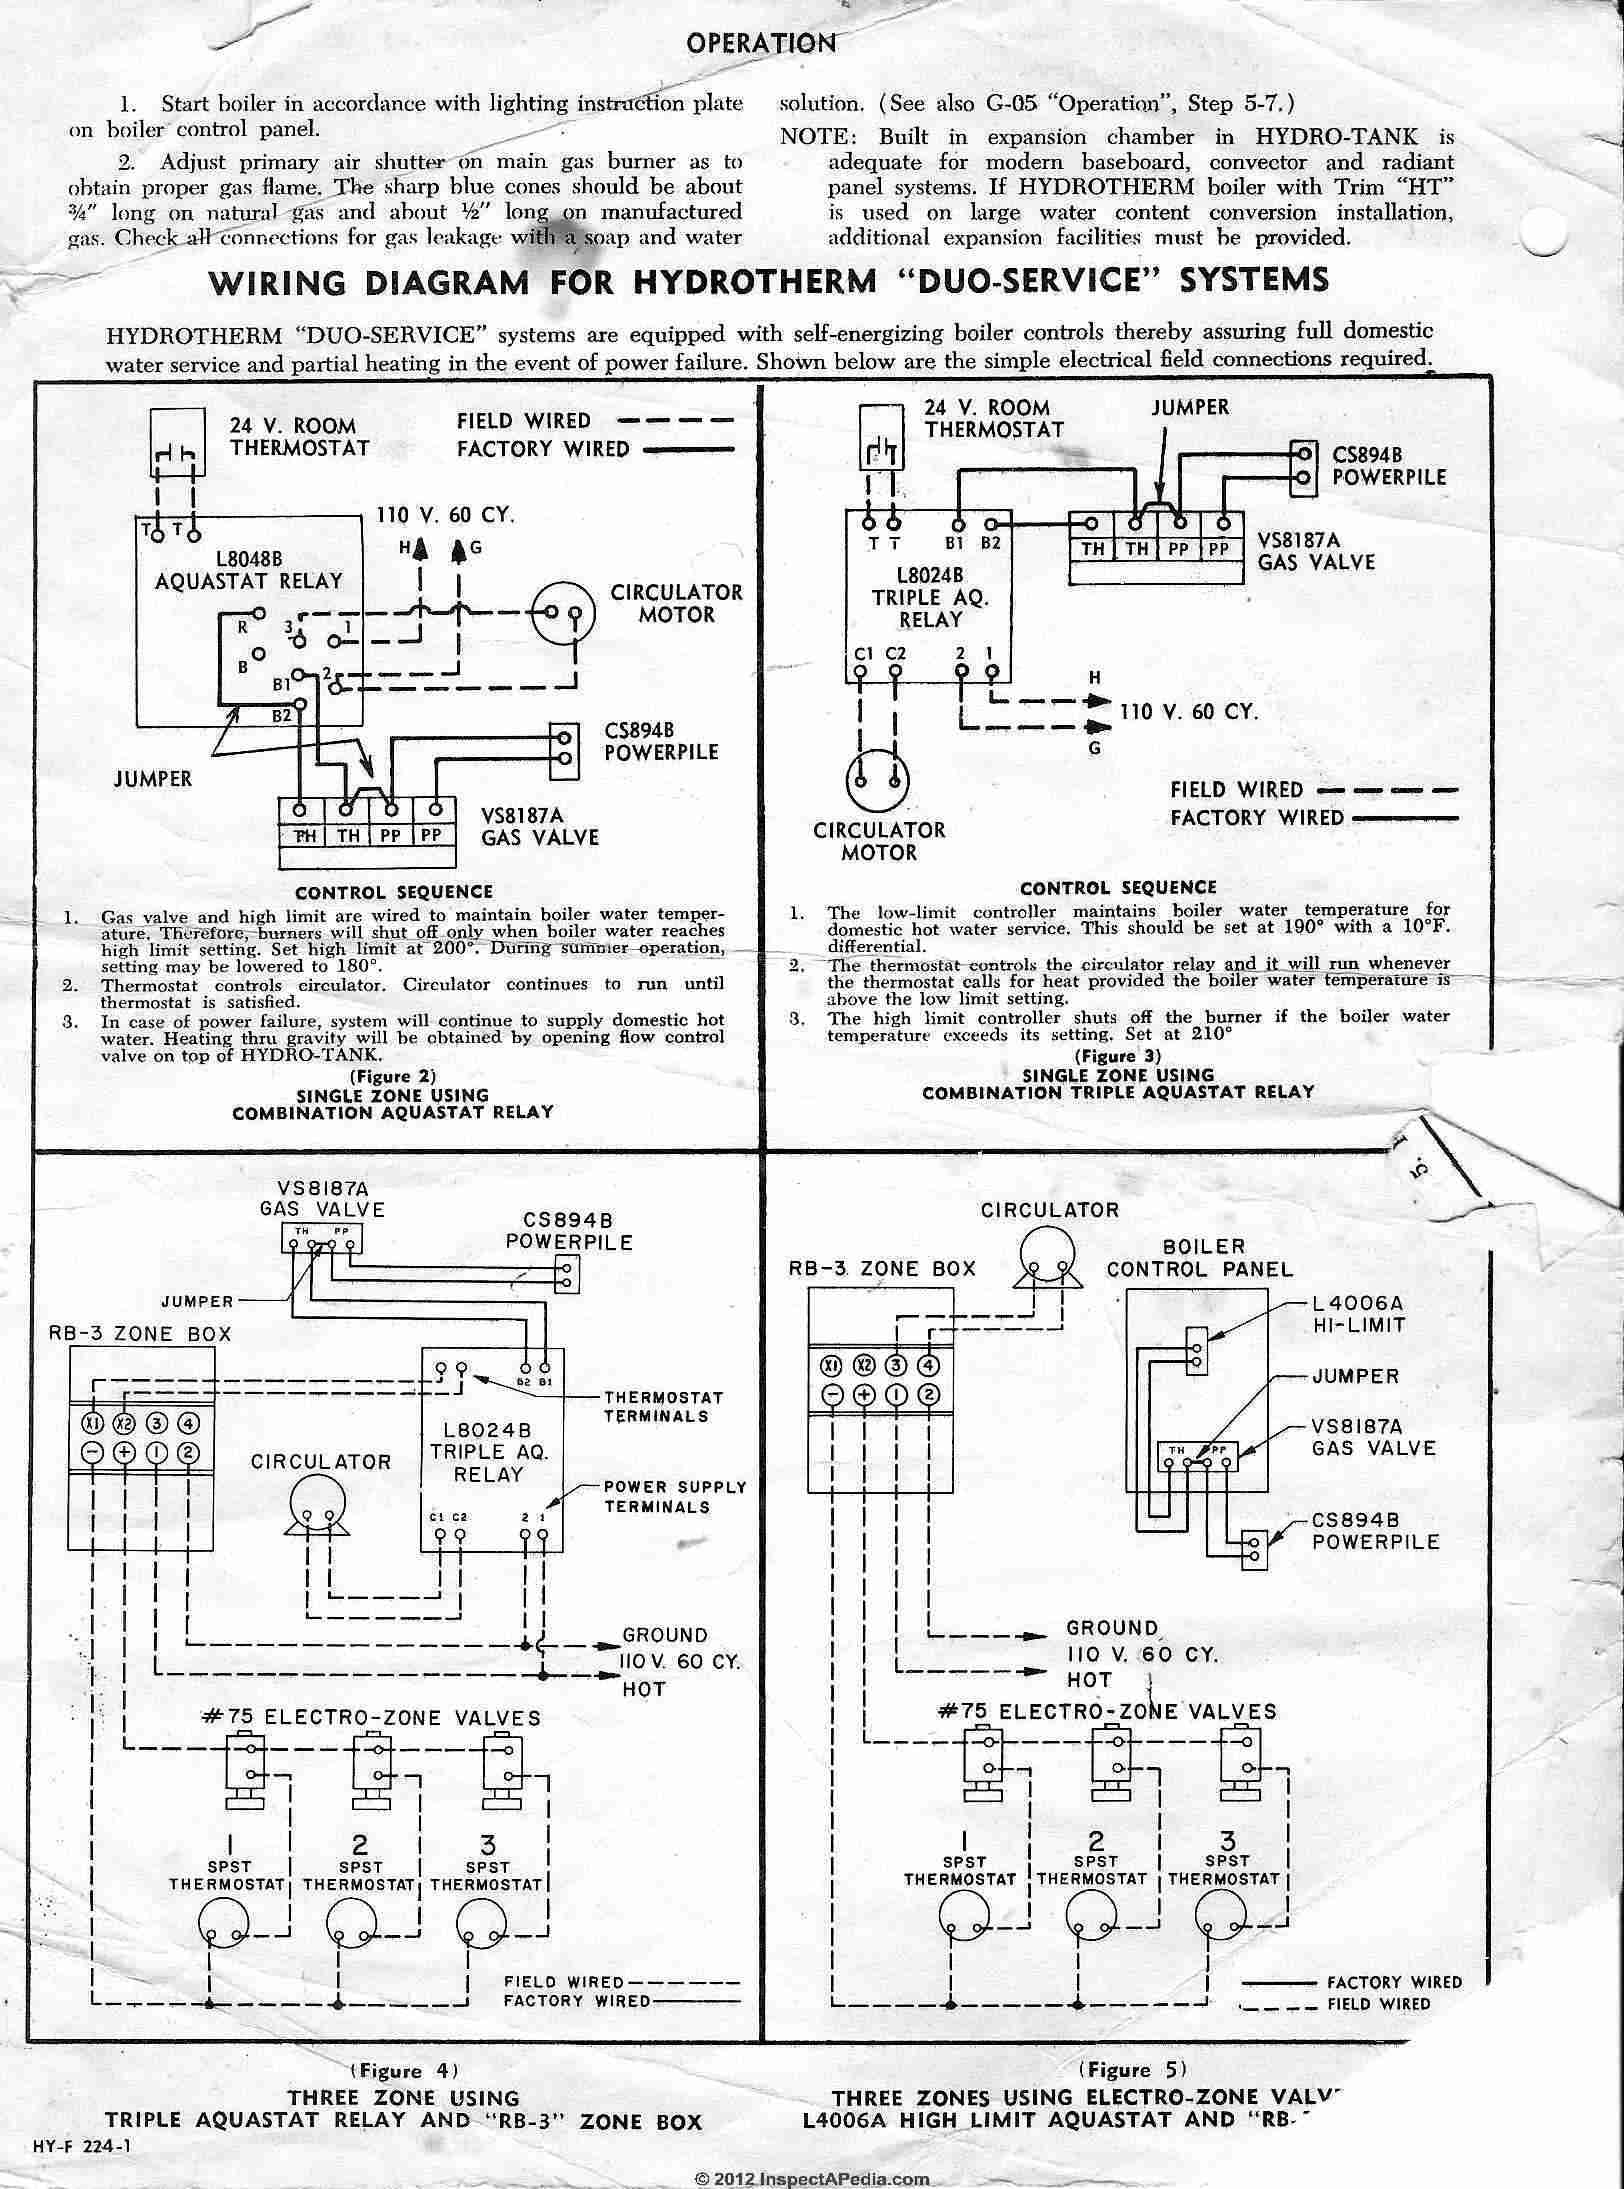 honeywell wiring guide honeywell image wiring diagram heating boiler aquastat control diagnosis troubleshooting repair on honeywell wiring guide